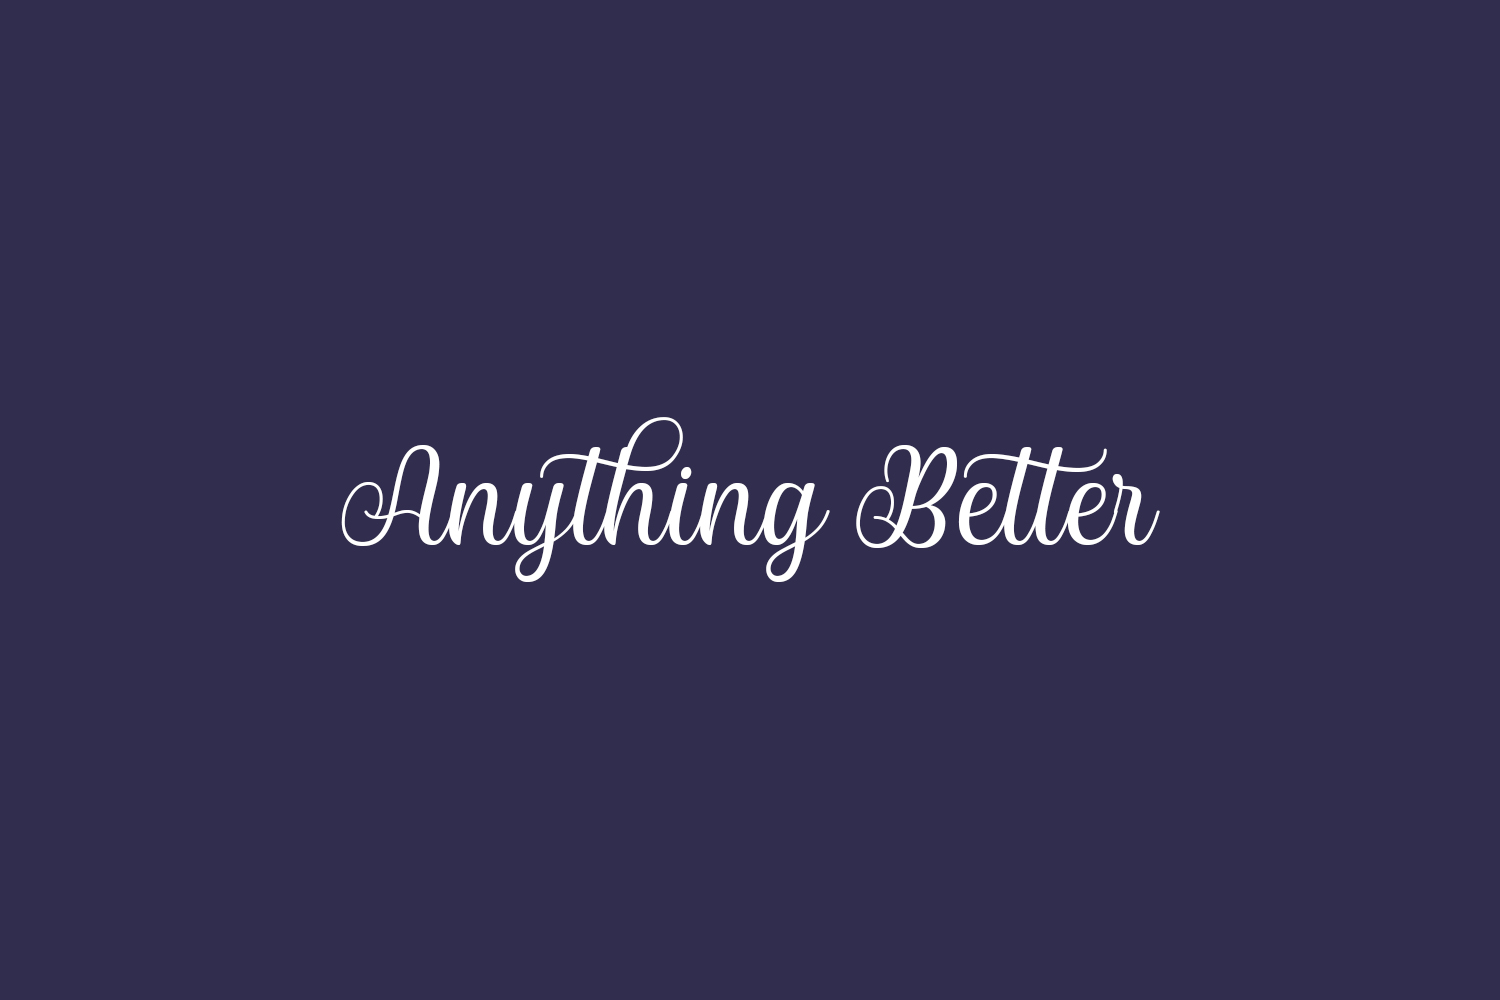 Anything Better Free Font